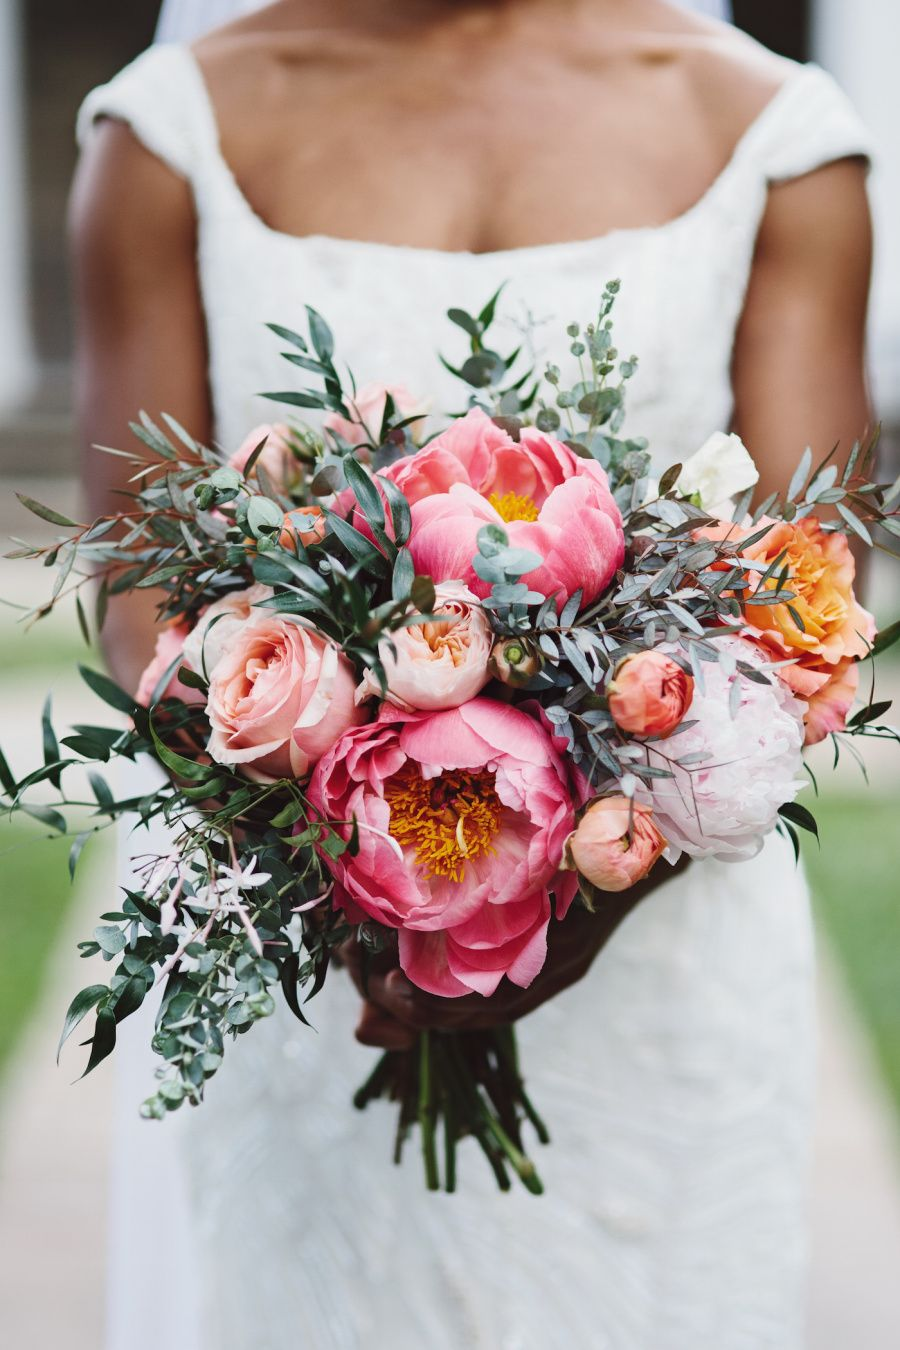 20 Amazing Wedding Bouquets | Bouquets | Pinterest | Flower bouquets ...